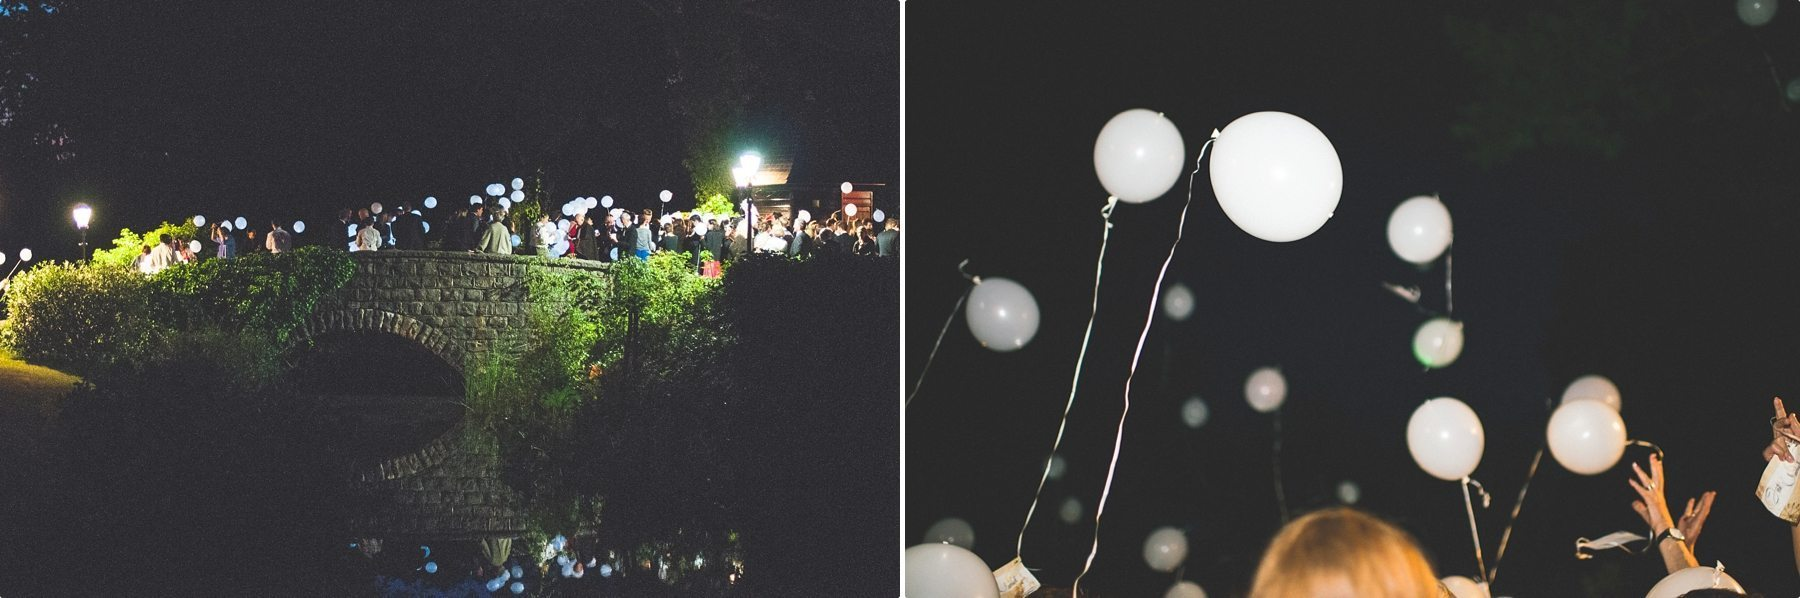 wedding guests releasing lit helium balloons at Coworth Park barn summer wedding